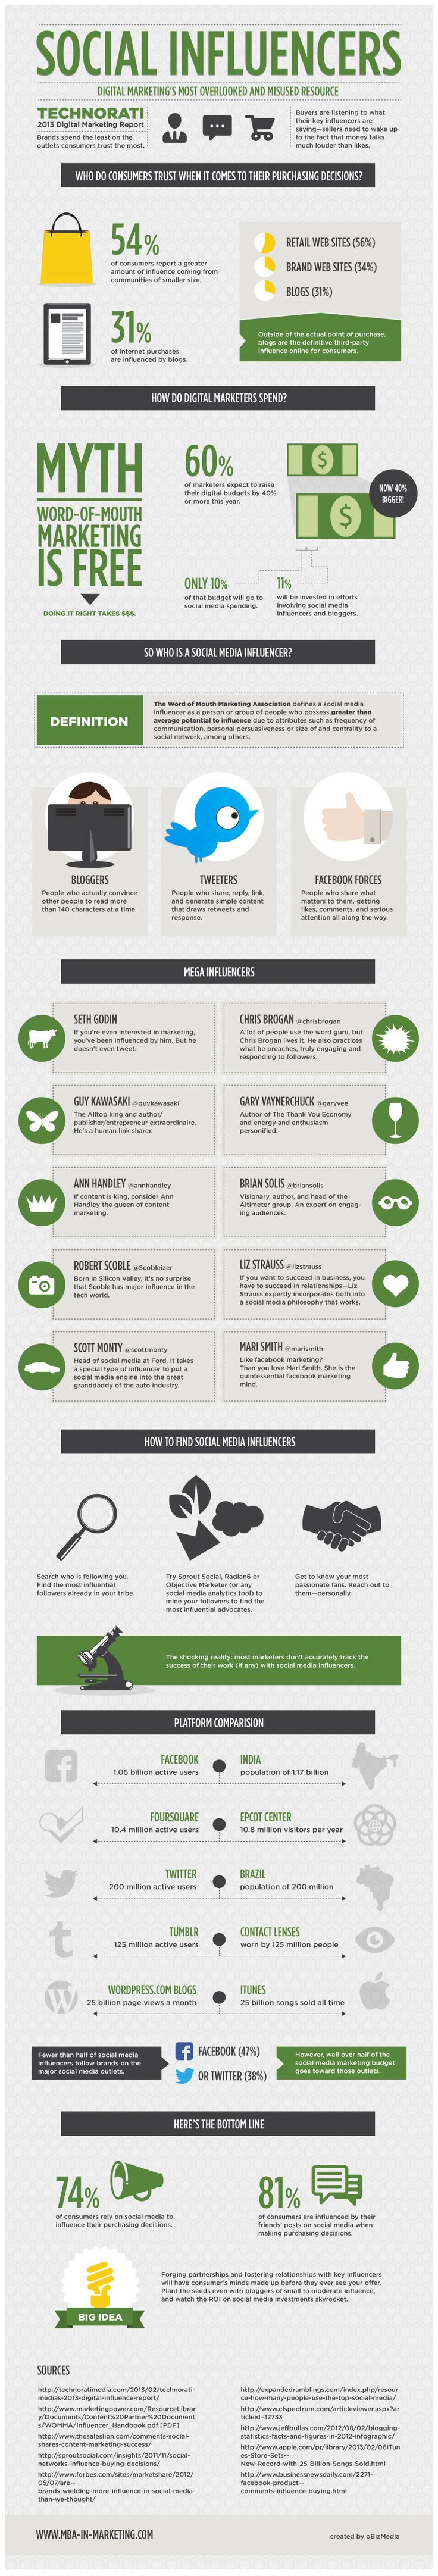 Social Media Influencers #Infographic... Great to see @Scott Monty on here (cl).